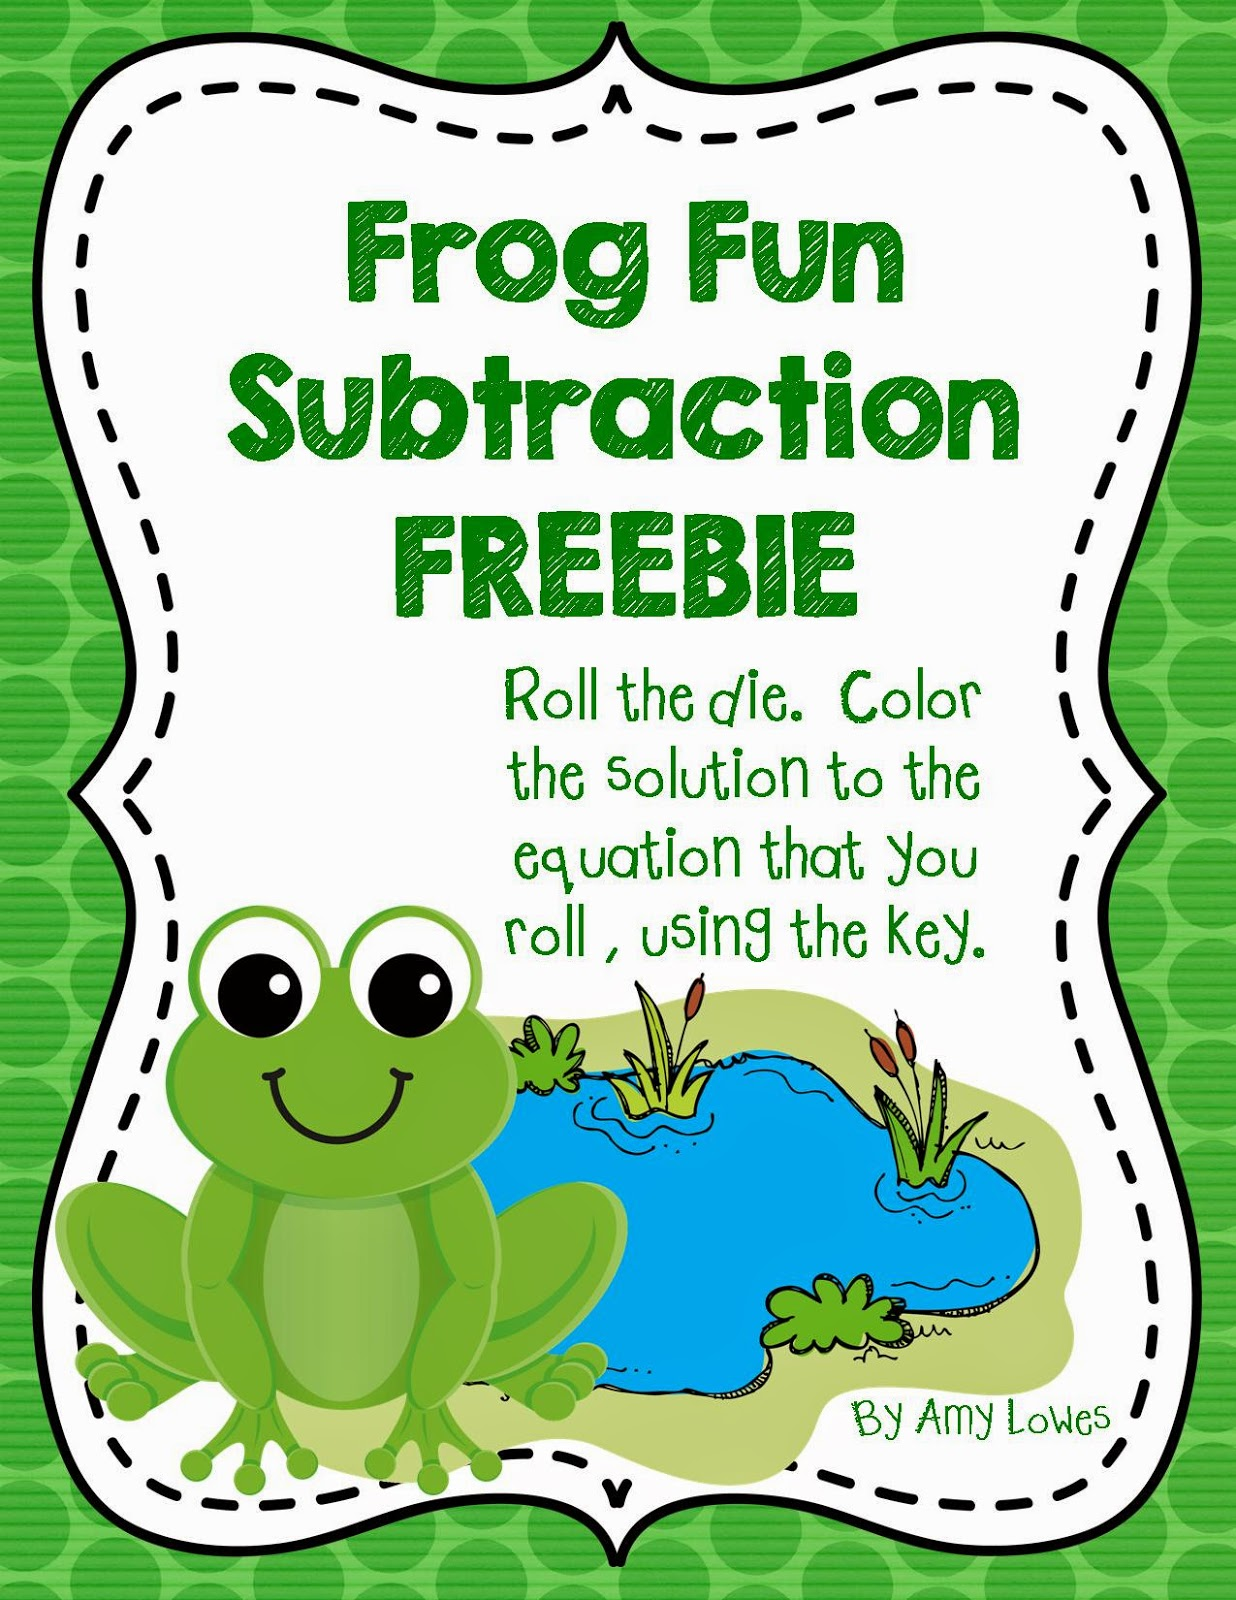 http://www.teacherspayteachers.com/Product/Frog-Fun-Subtraction-FREEBIE-1217341